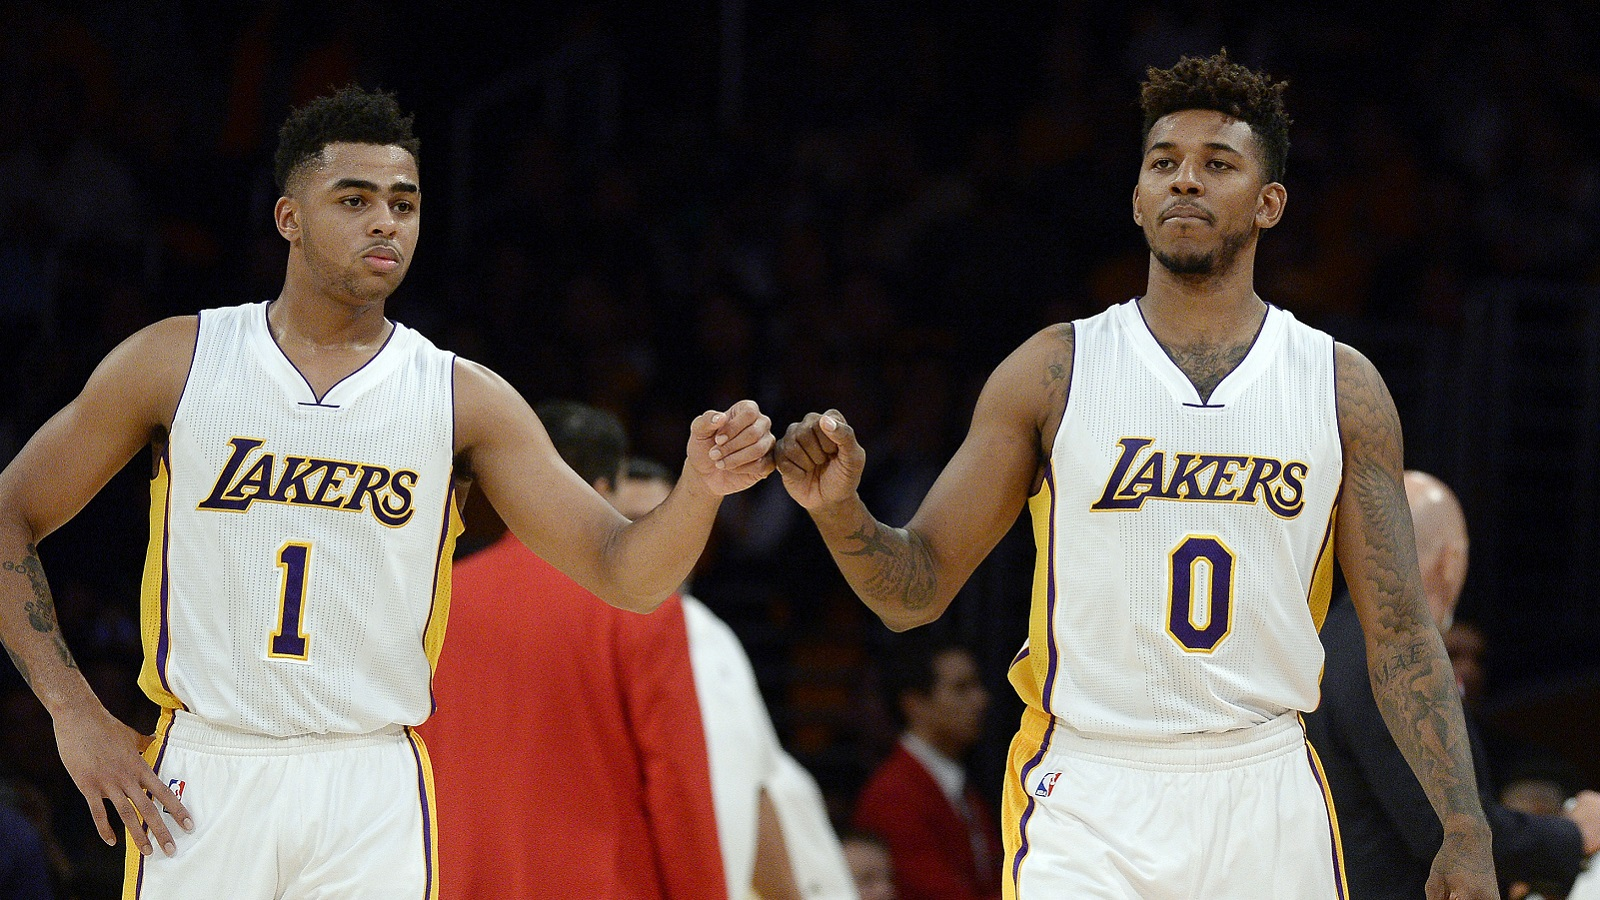 LOS ANGELES, CA - NOVEMBER 22: D'Angelo Russell #1 and Nick Young #0 of the Los Angeles Lakers pump fists during the second half of the basketball game against Portland Trail Blazers at Staples Center November 22, 2015 in Los Angeles, California. NOTE TO USER: User expressly acknowledges and agrees that, by downloading and or using the photograph, User is consenting to the terms and conditions of the Getty Images License Agreement. (Photo by Kevork Djansezian/Getty Images)